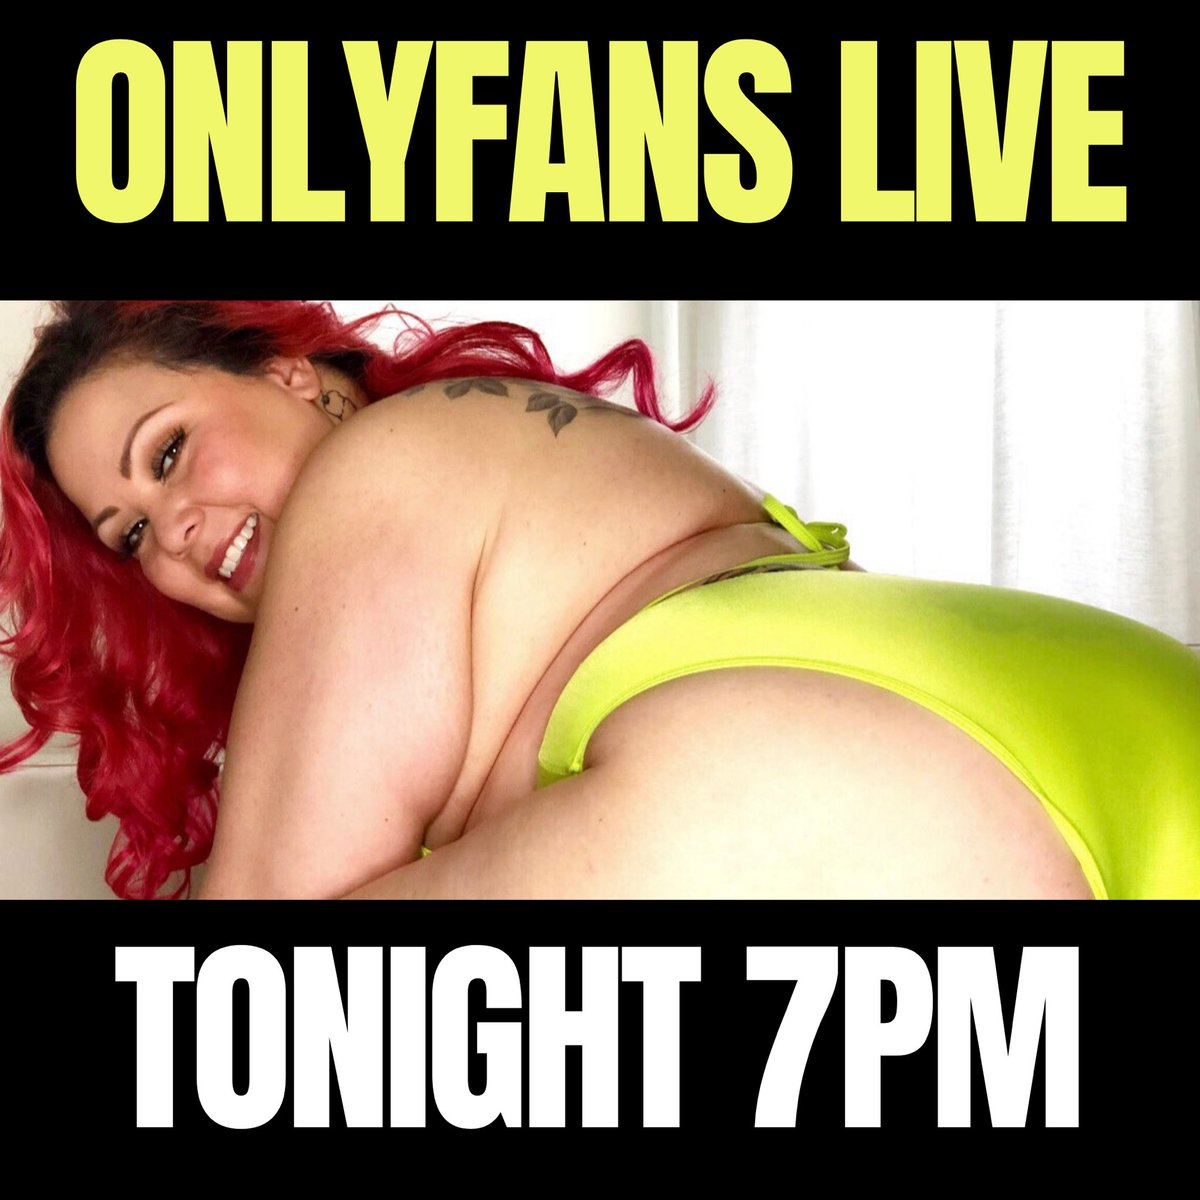 I can't wait for my live show tonight at 7pm PST! I'm offering a 40% discount for a limited number of subscribers, so you can cum play with me! I've got some new toys I want to try with you. 💛